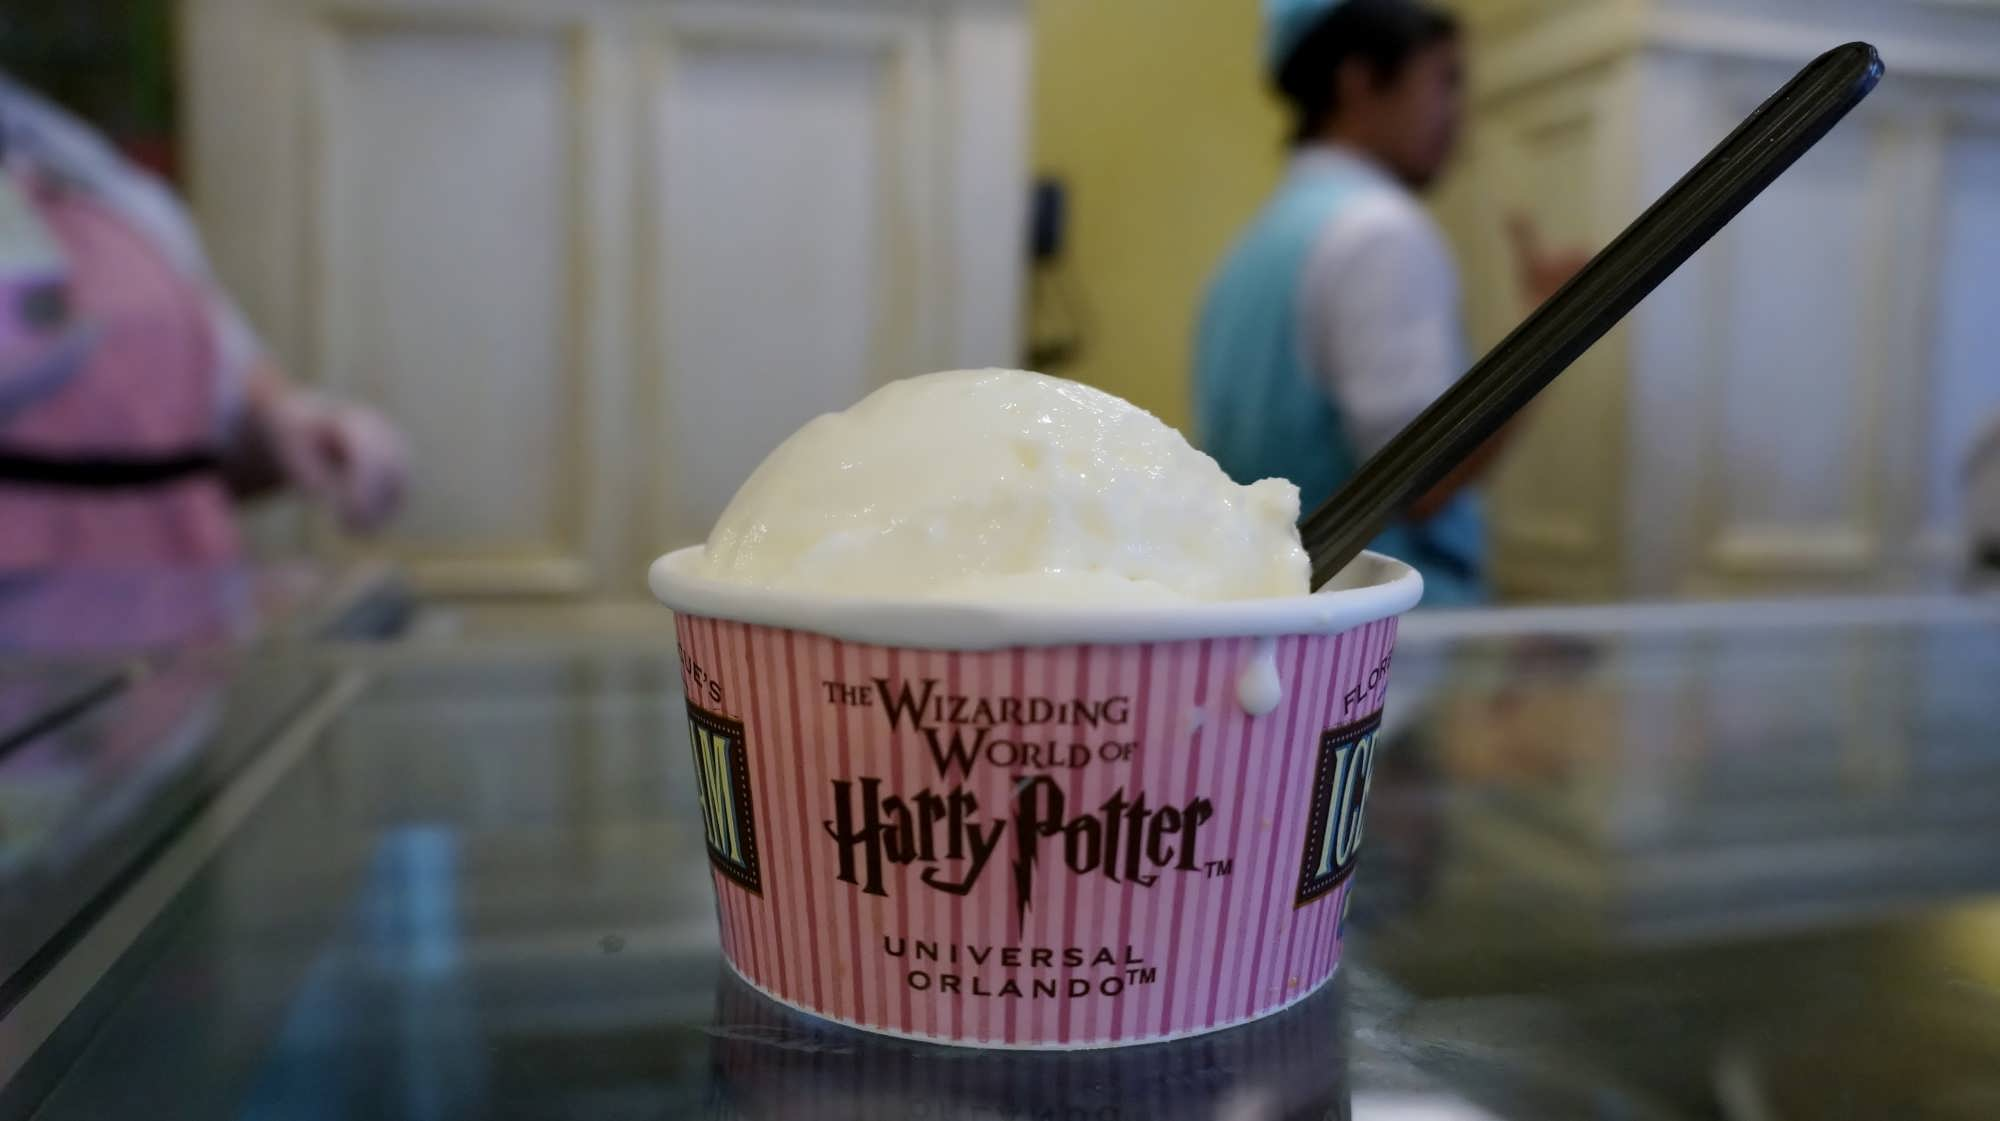 Hand-scooped ice cream at Florean Fortescue's Ice-Cream Parlor